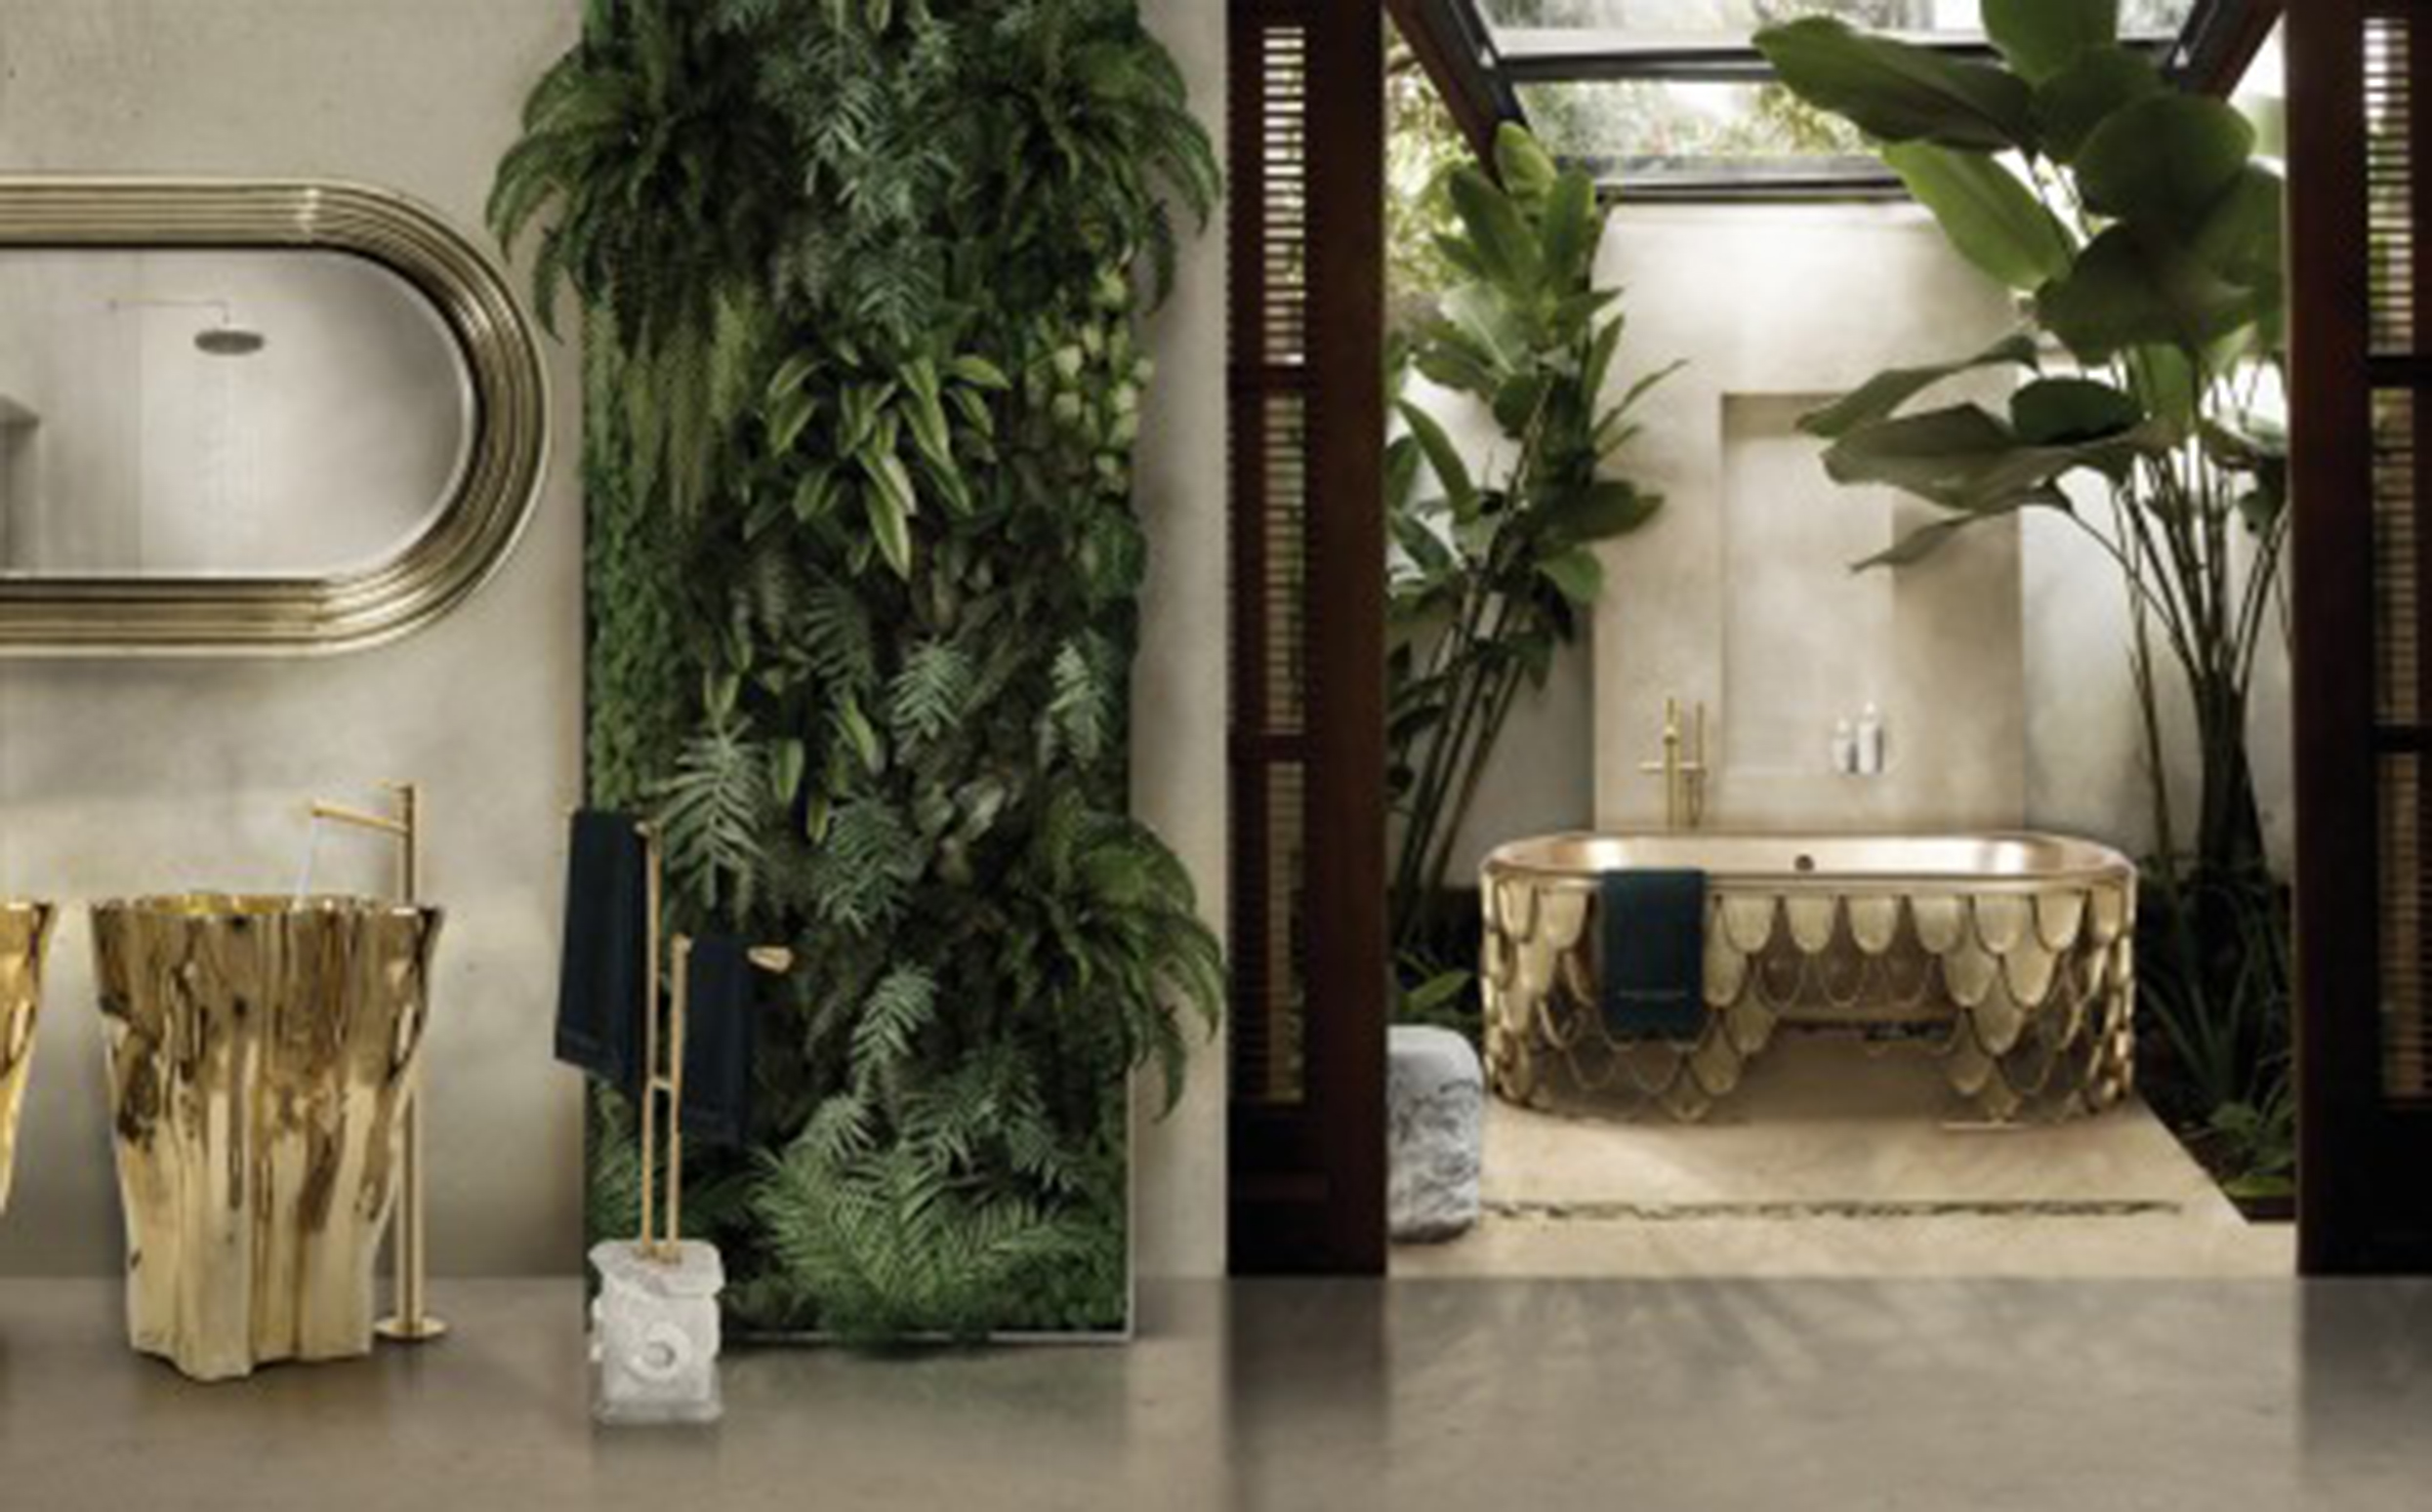 Stunning Bathroom Trends to try in 2021